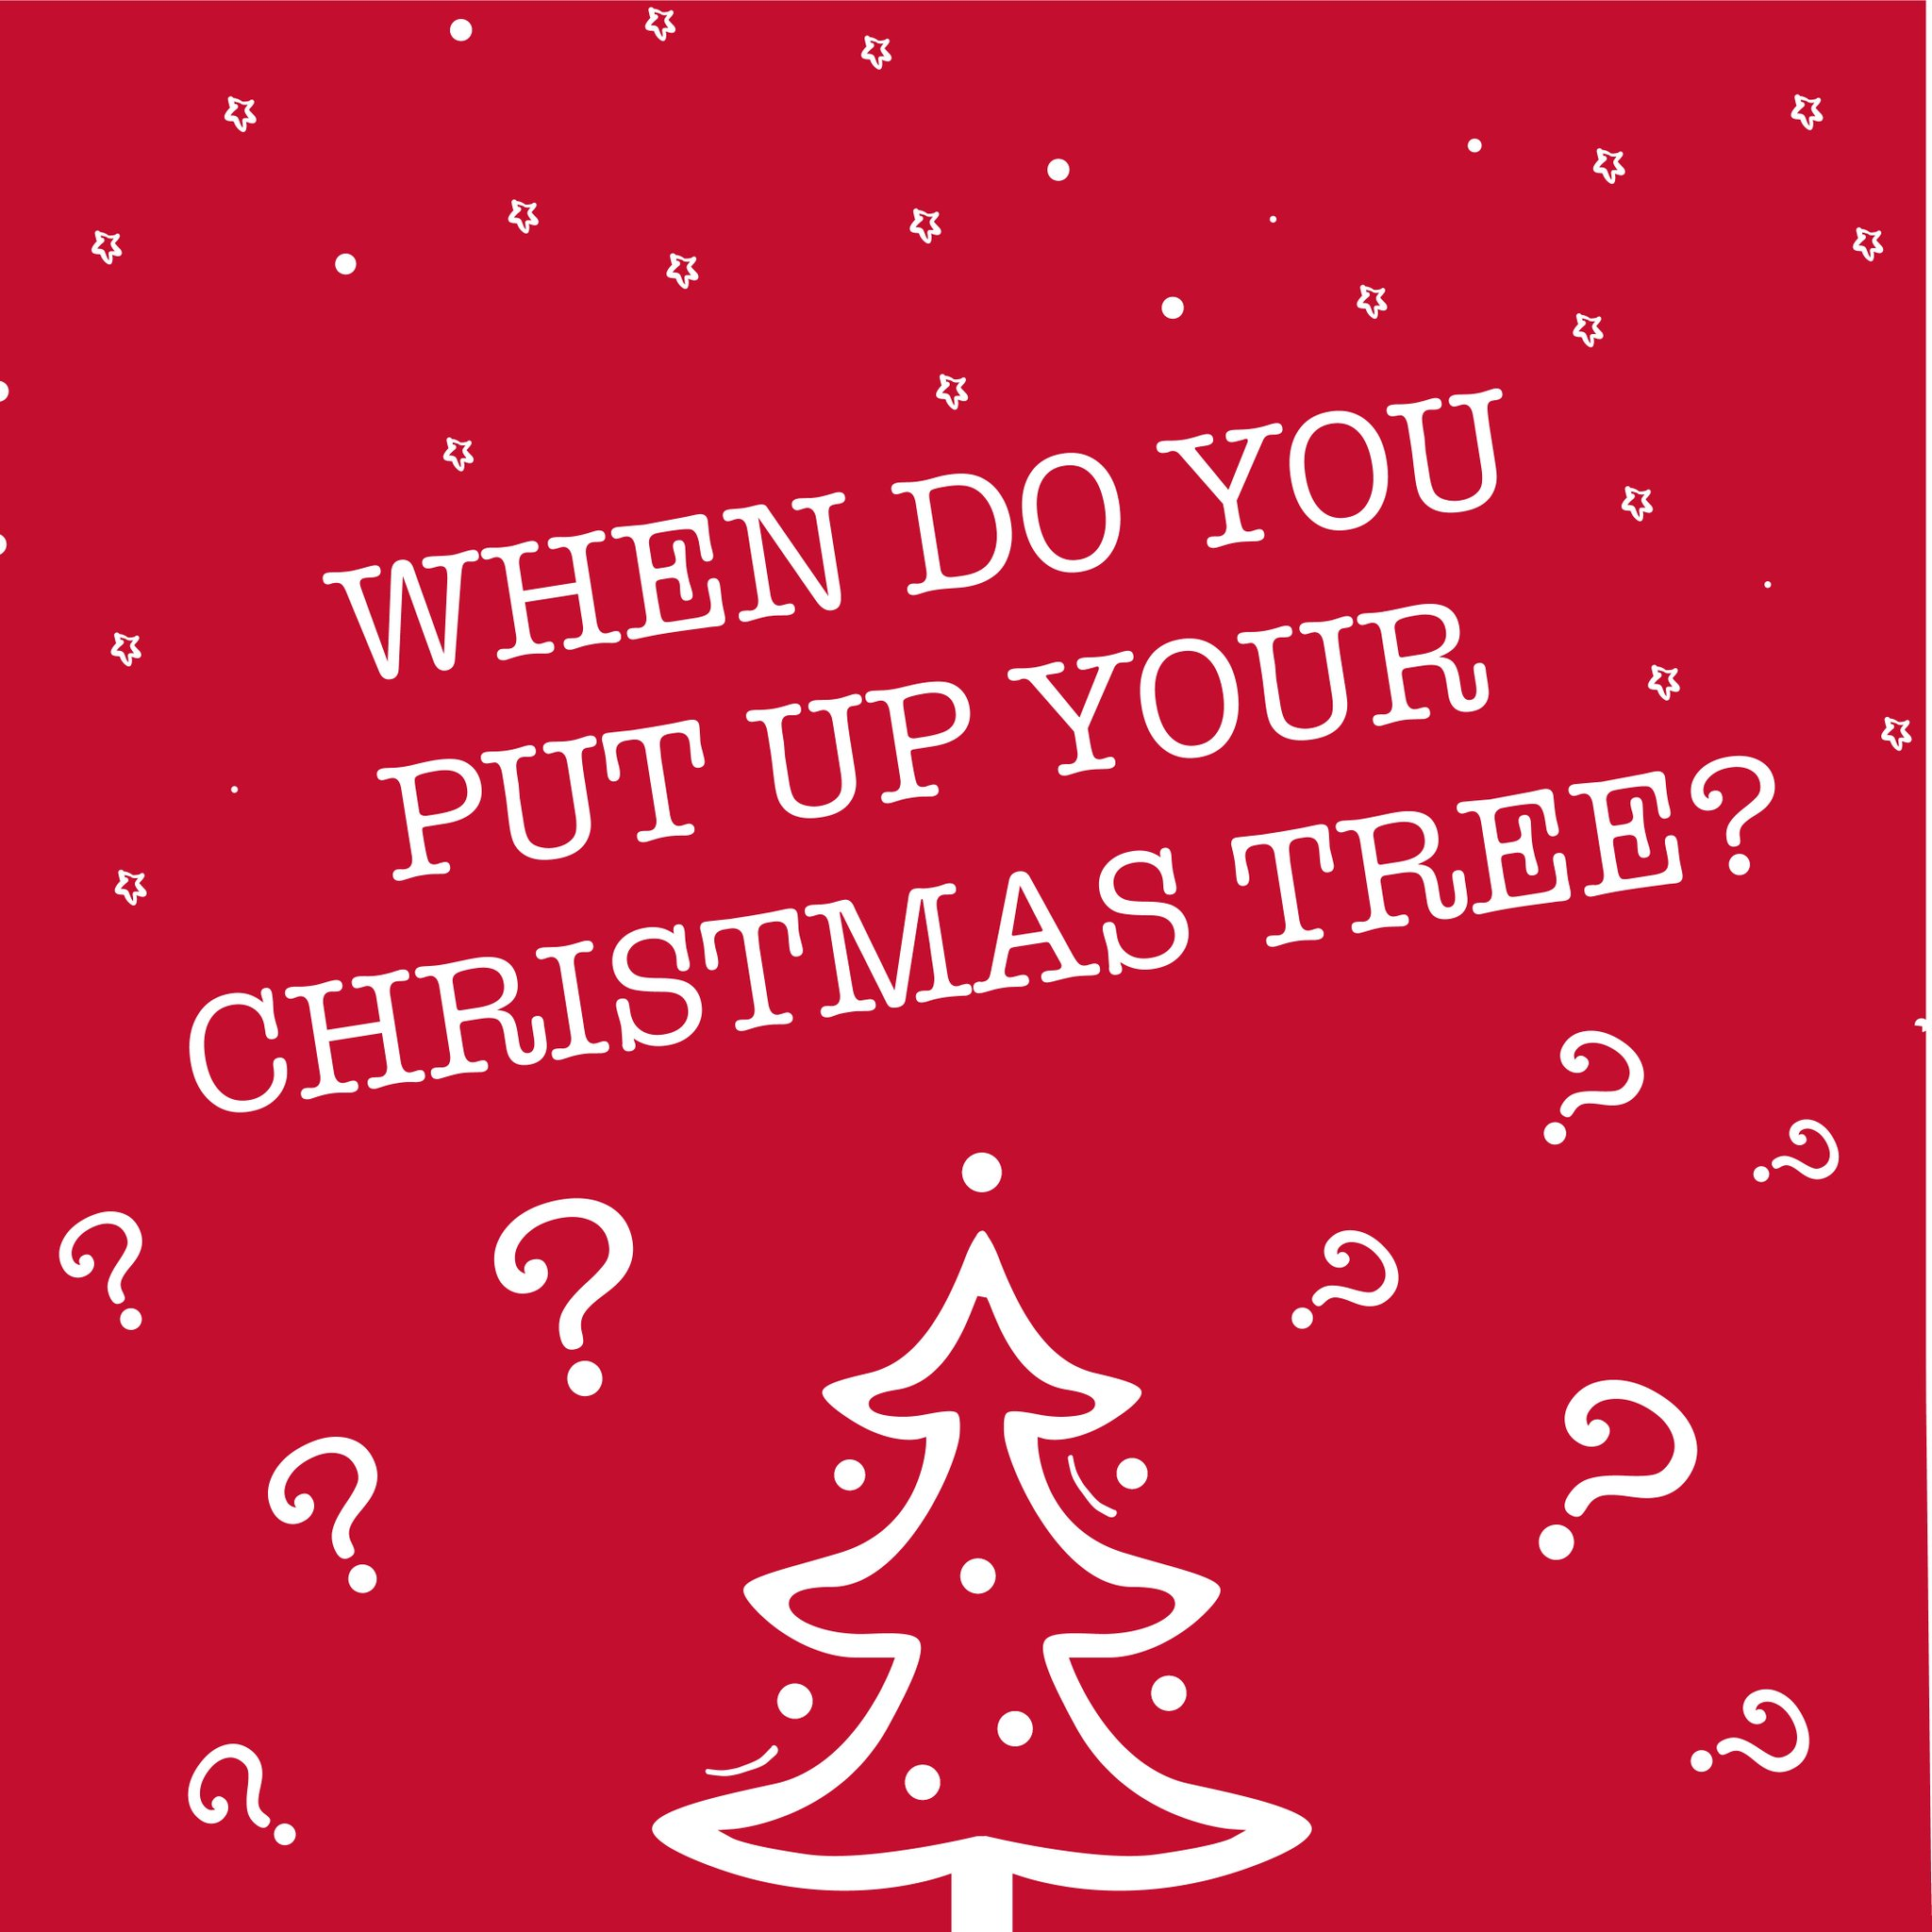 poundworld on twitter were seeing pictures of peoples homes with the christmas tree up what do you think far too early when do you put up your - When Do You Put Up Your Christmas Tree